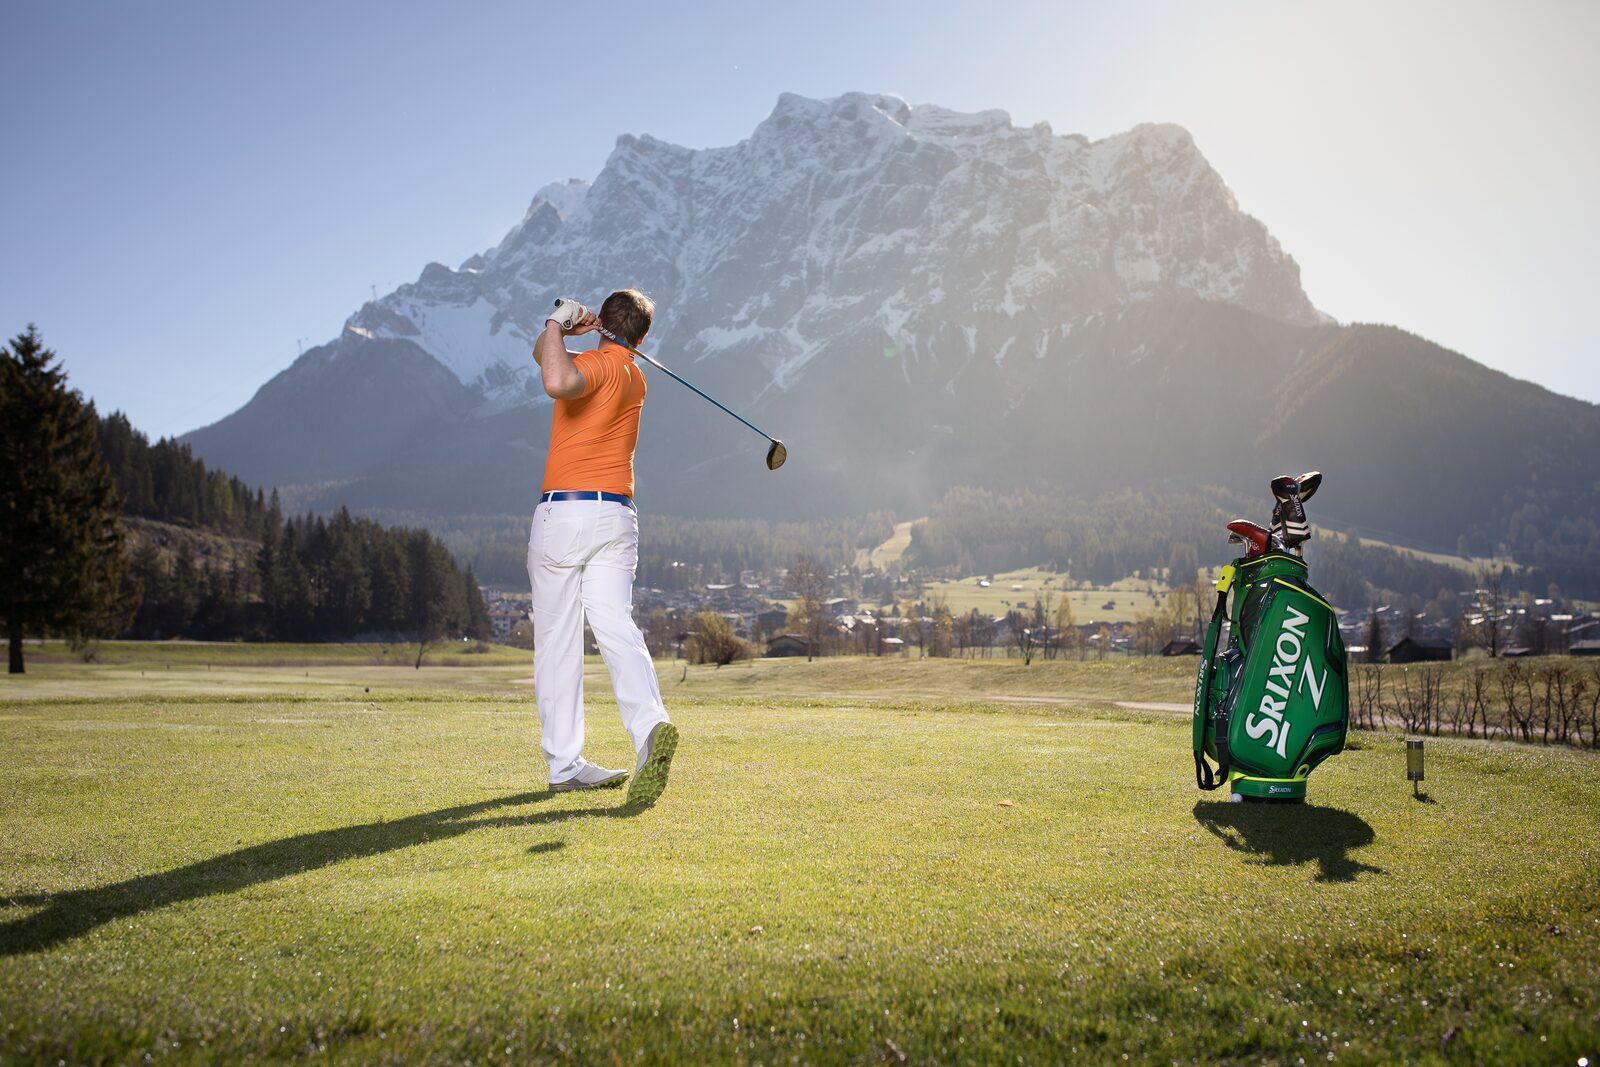 Playing golf while overlooking the Zugspitze